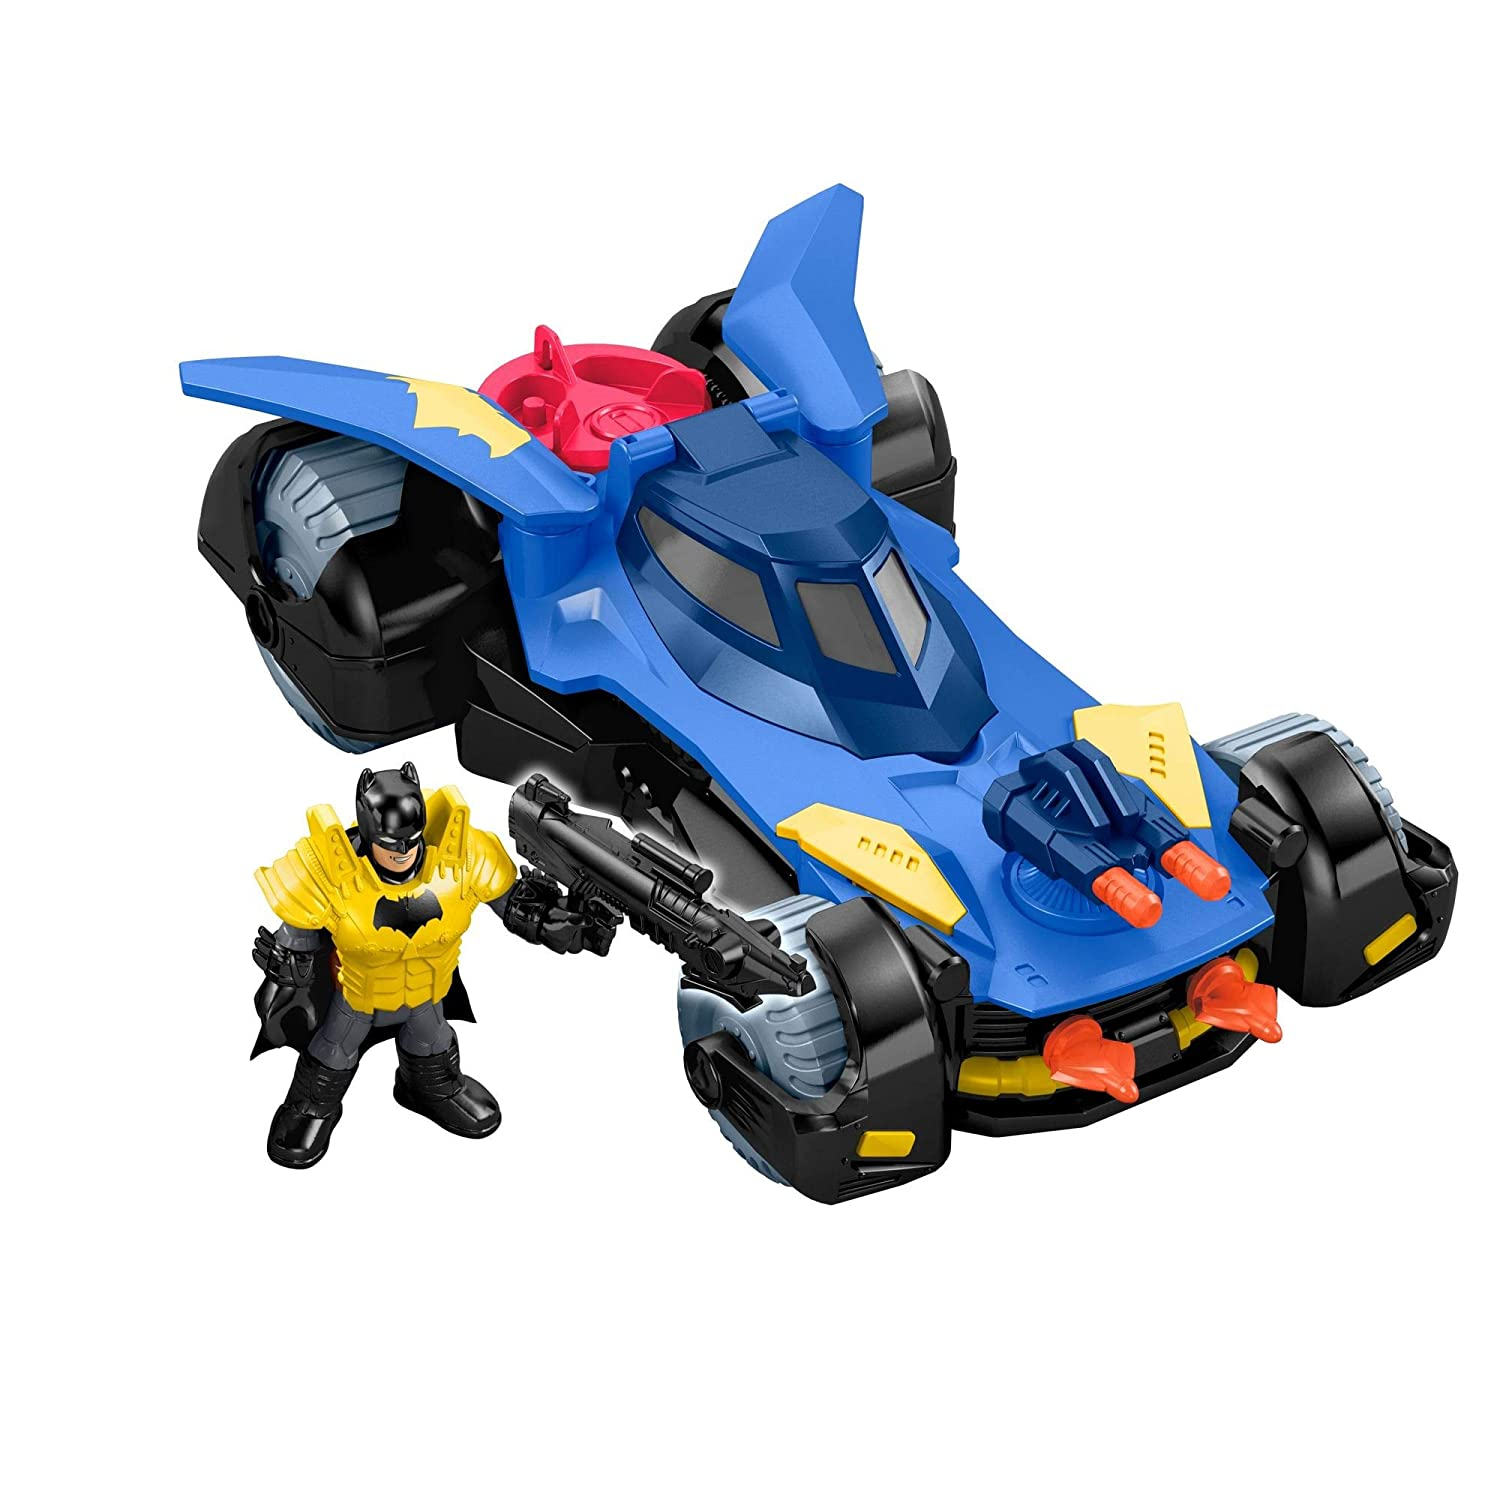 Fisher-Price Imaginext DC Super Friends, Batmobile Fisher Price Mattel DHT64